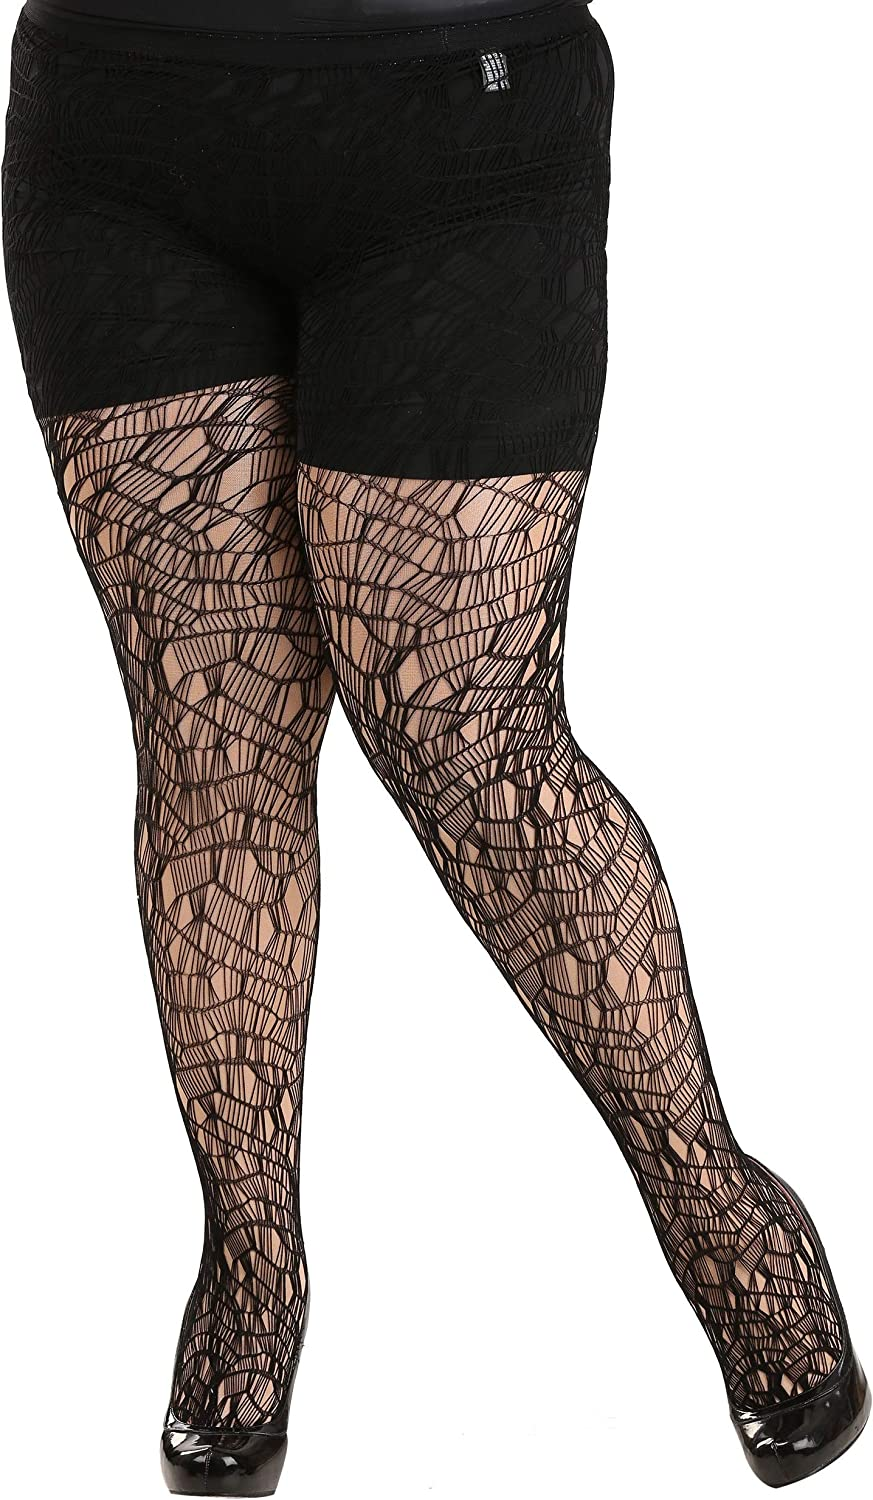 Seeing Red Adult Ripped Tights Size O/S Includes Tights